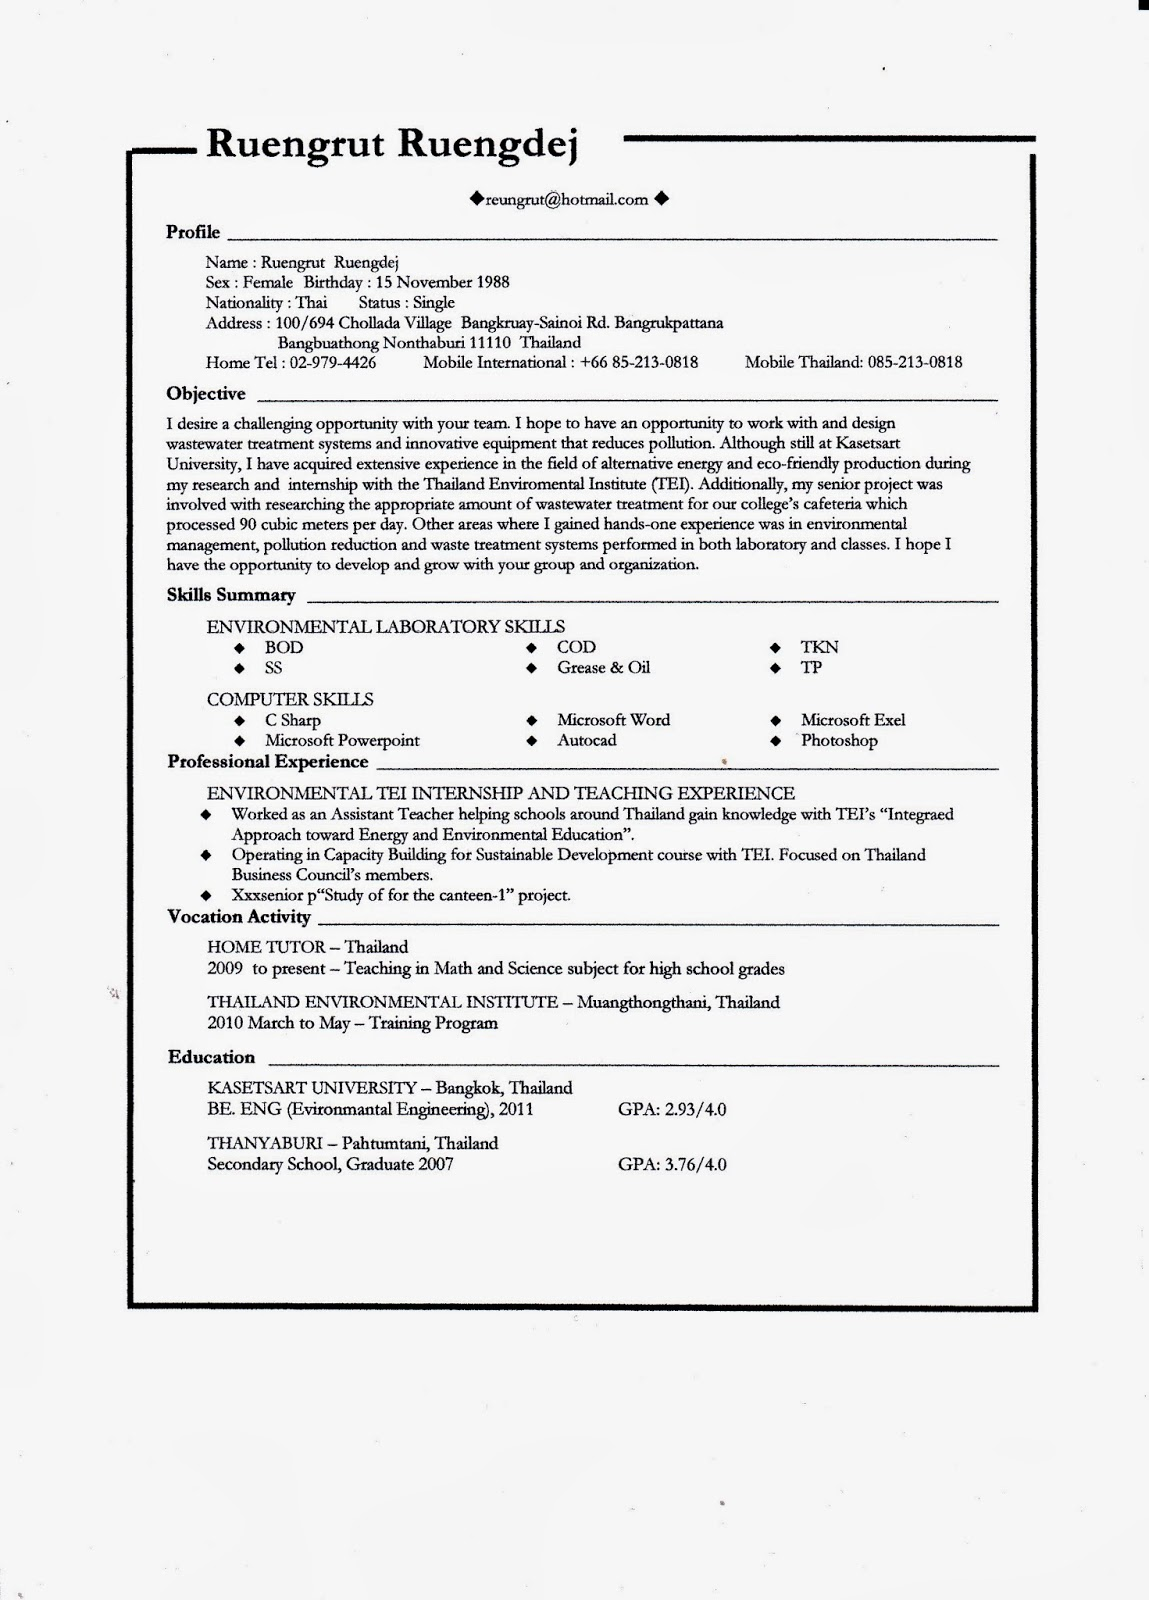 sample resume environmental engineering kasetsart university